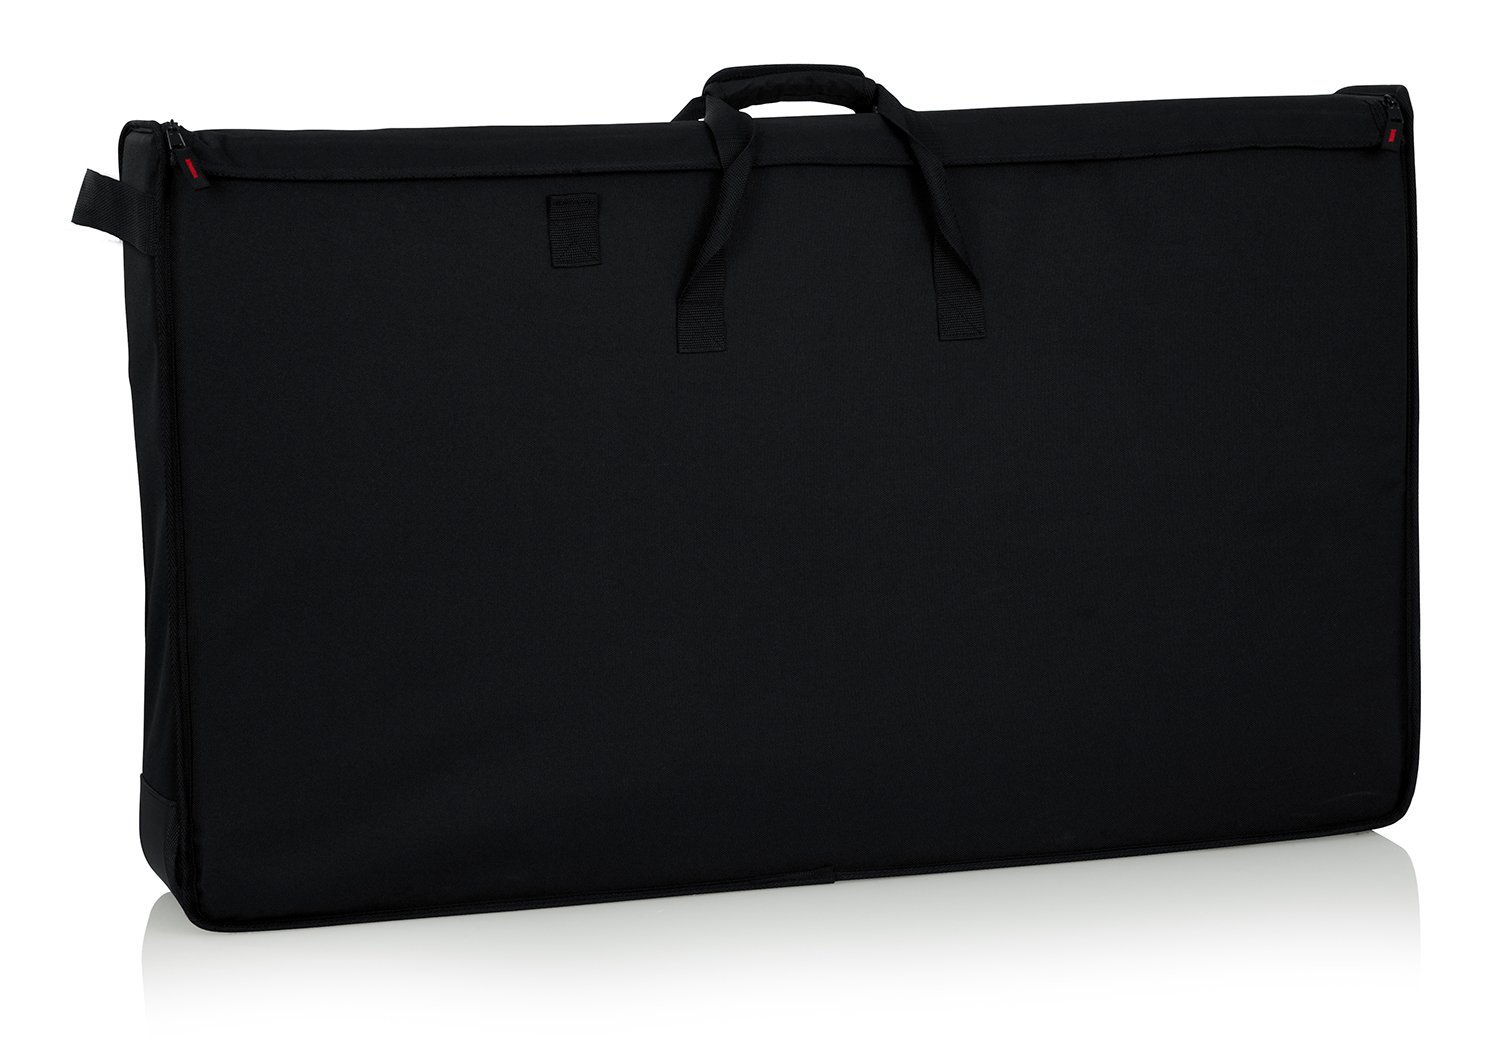 Padded Nylon Carry Tote Bag for Transporting LCD Screens